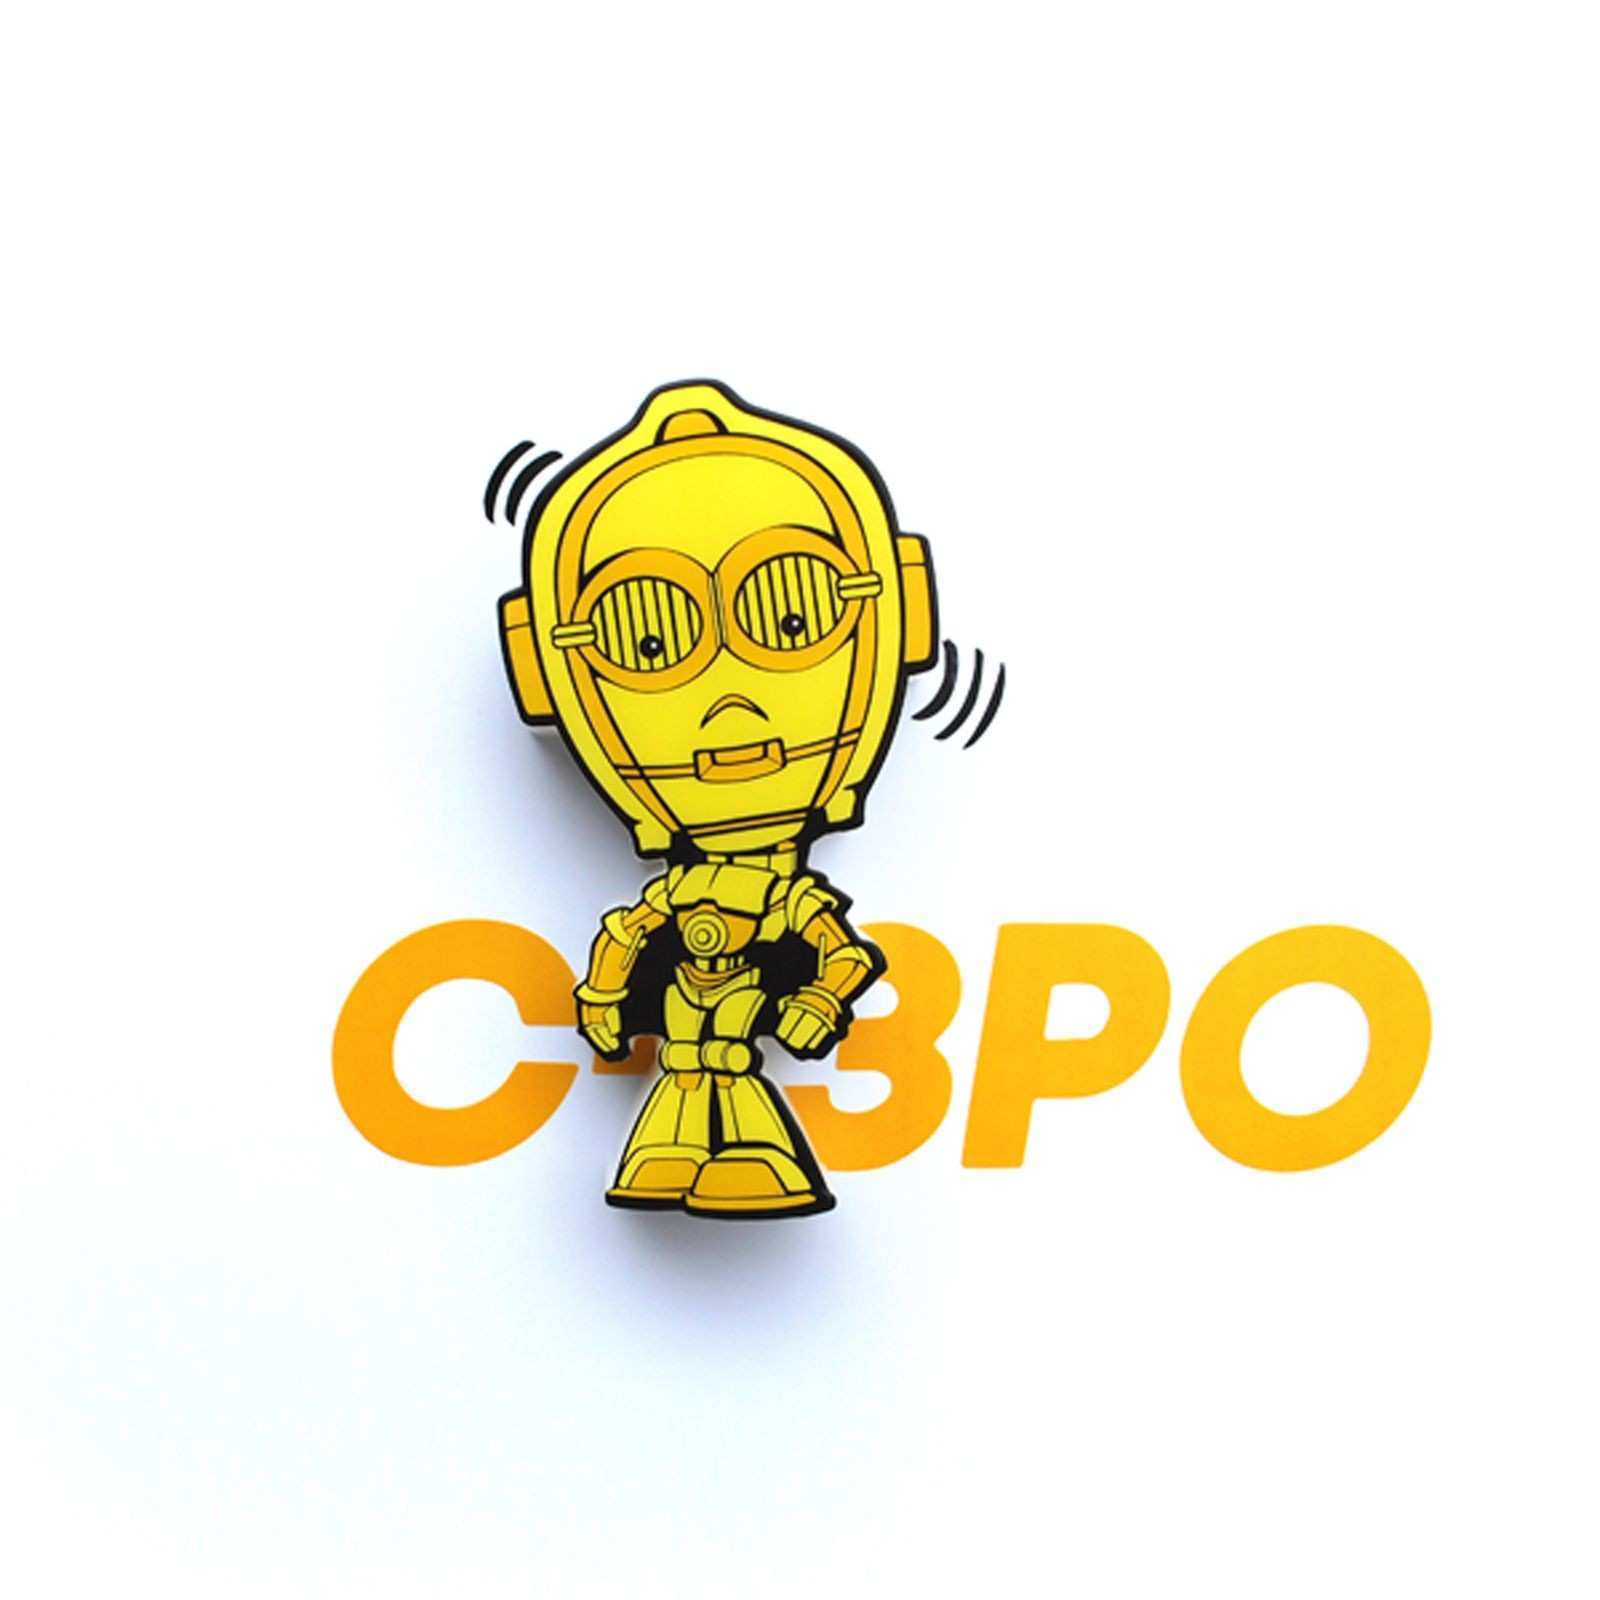 Star Wars Wall Decor Luxury Star Wars C 3po 3d Led Decor Wall Light